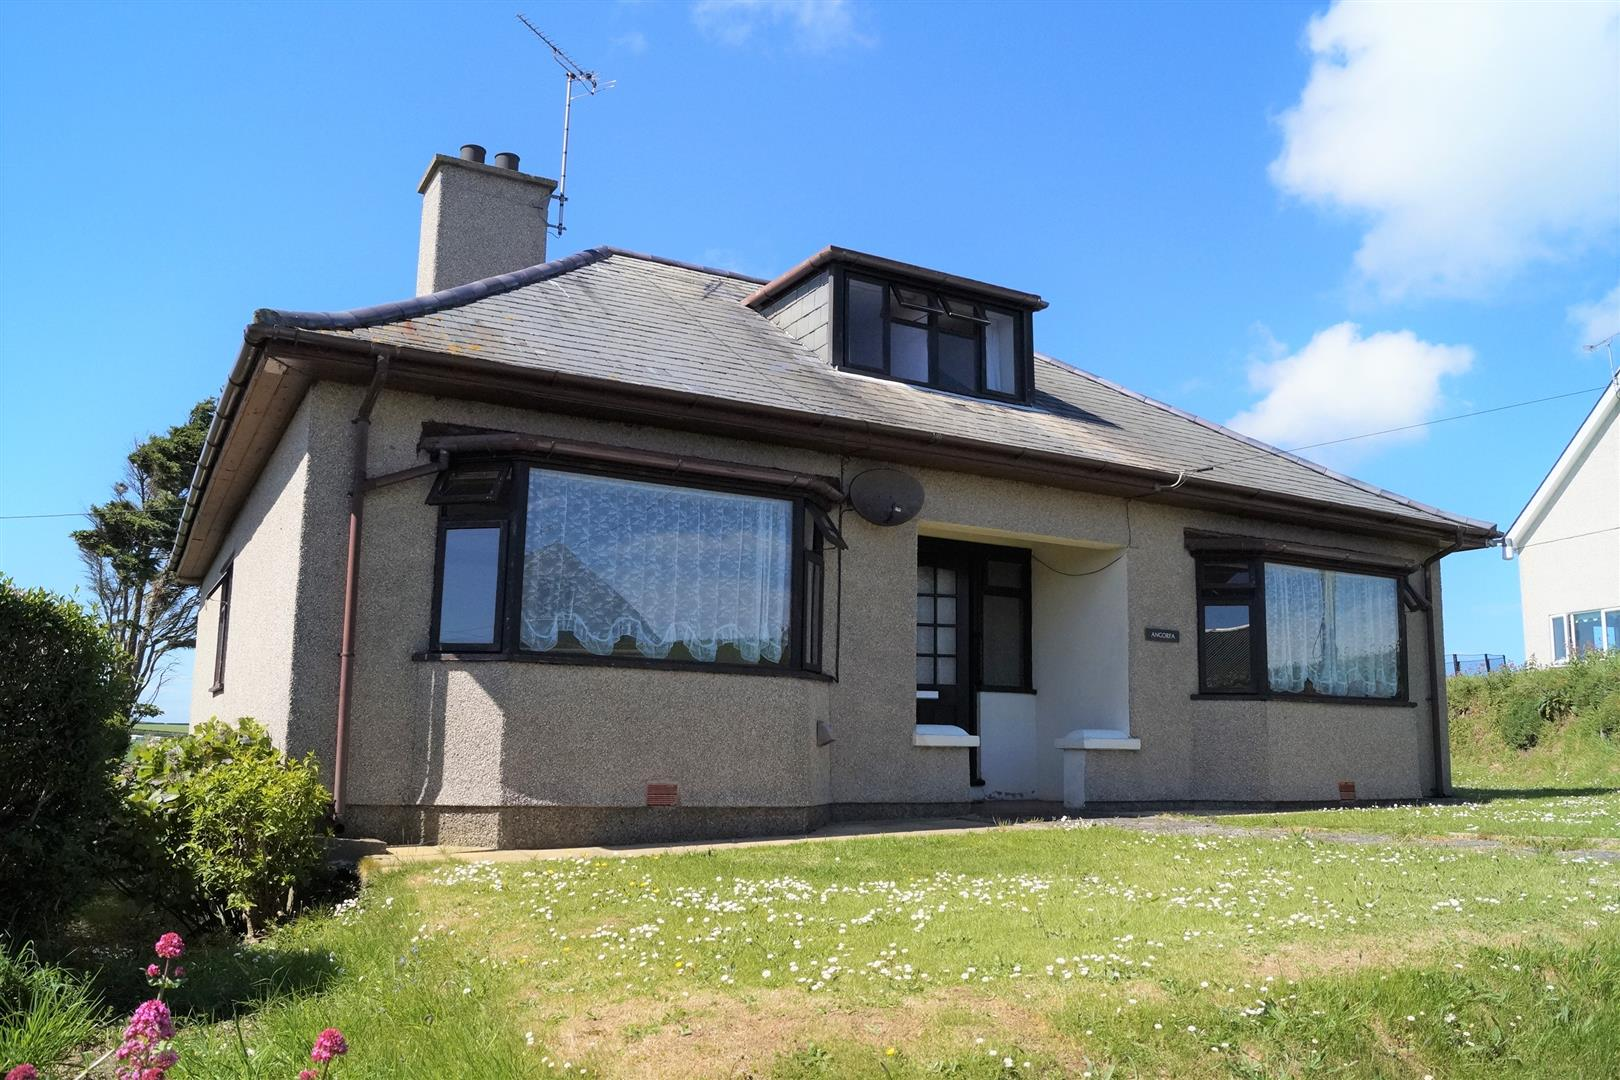 Aberdaron, Pwllheli - £295,000/Reduced to